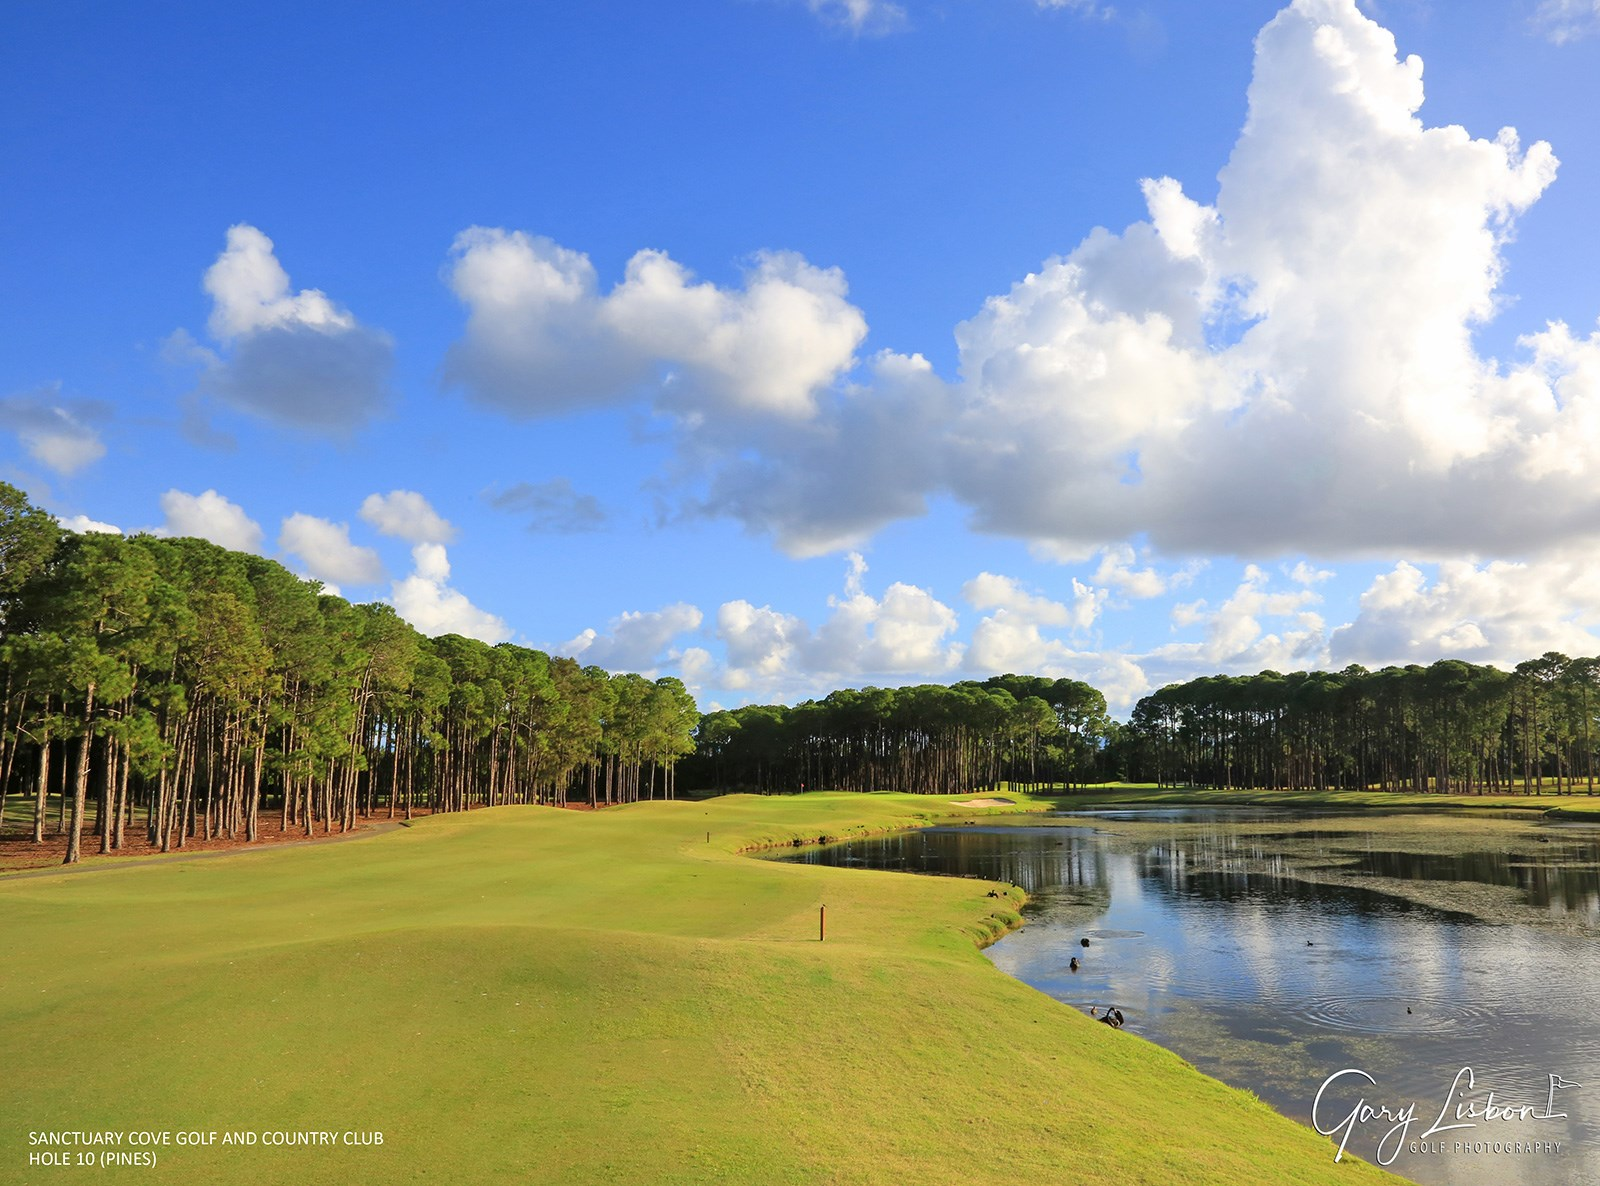 Sanctuary Cove Golf and Country Club - The Pines Hole 10